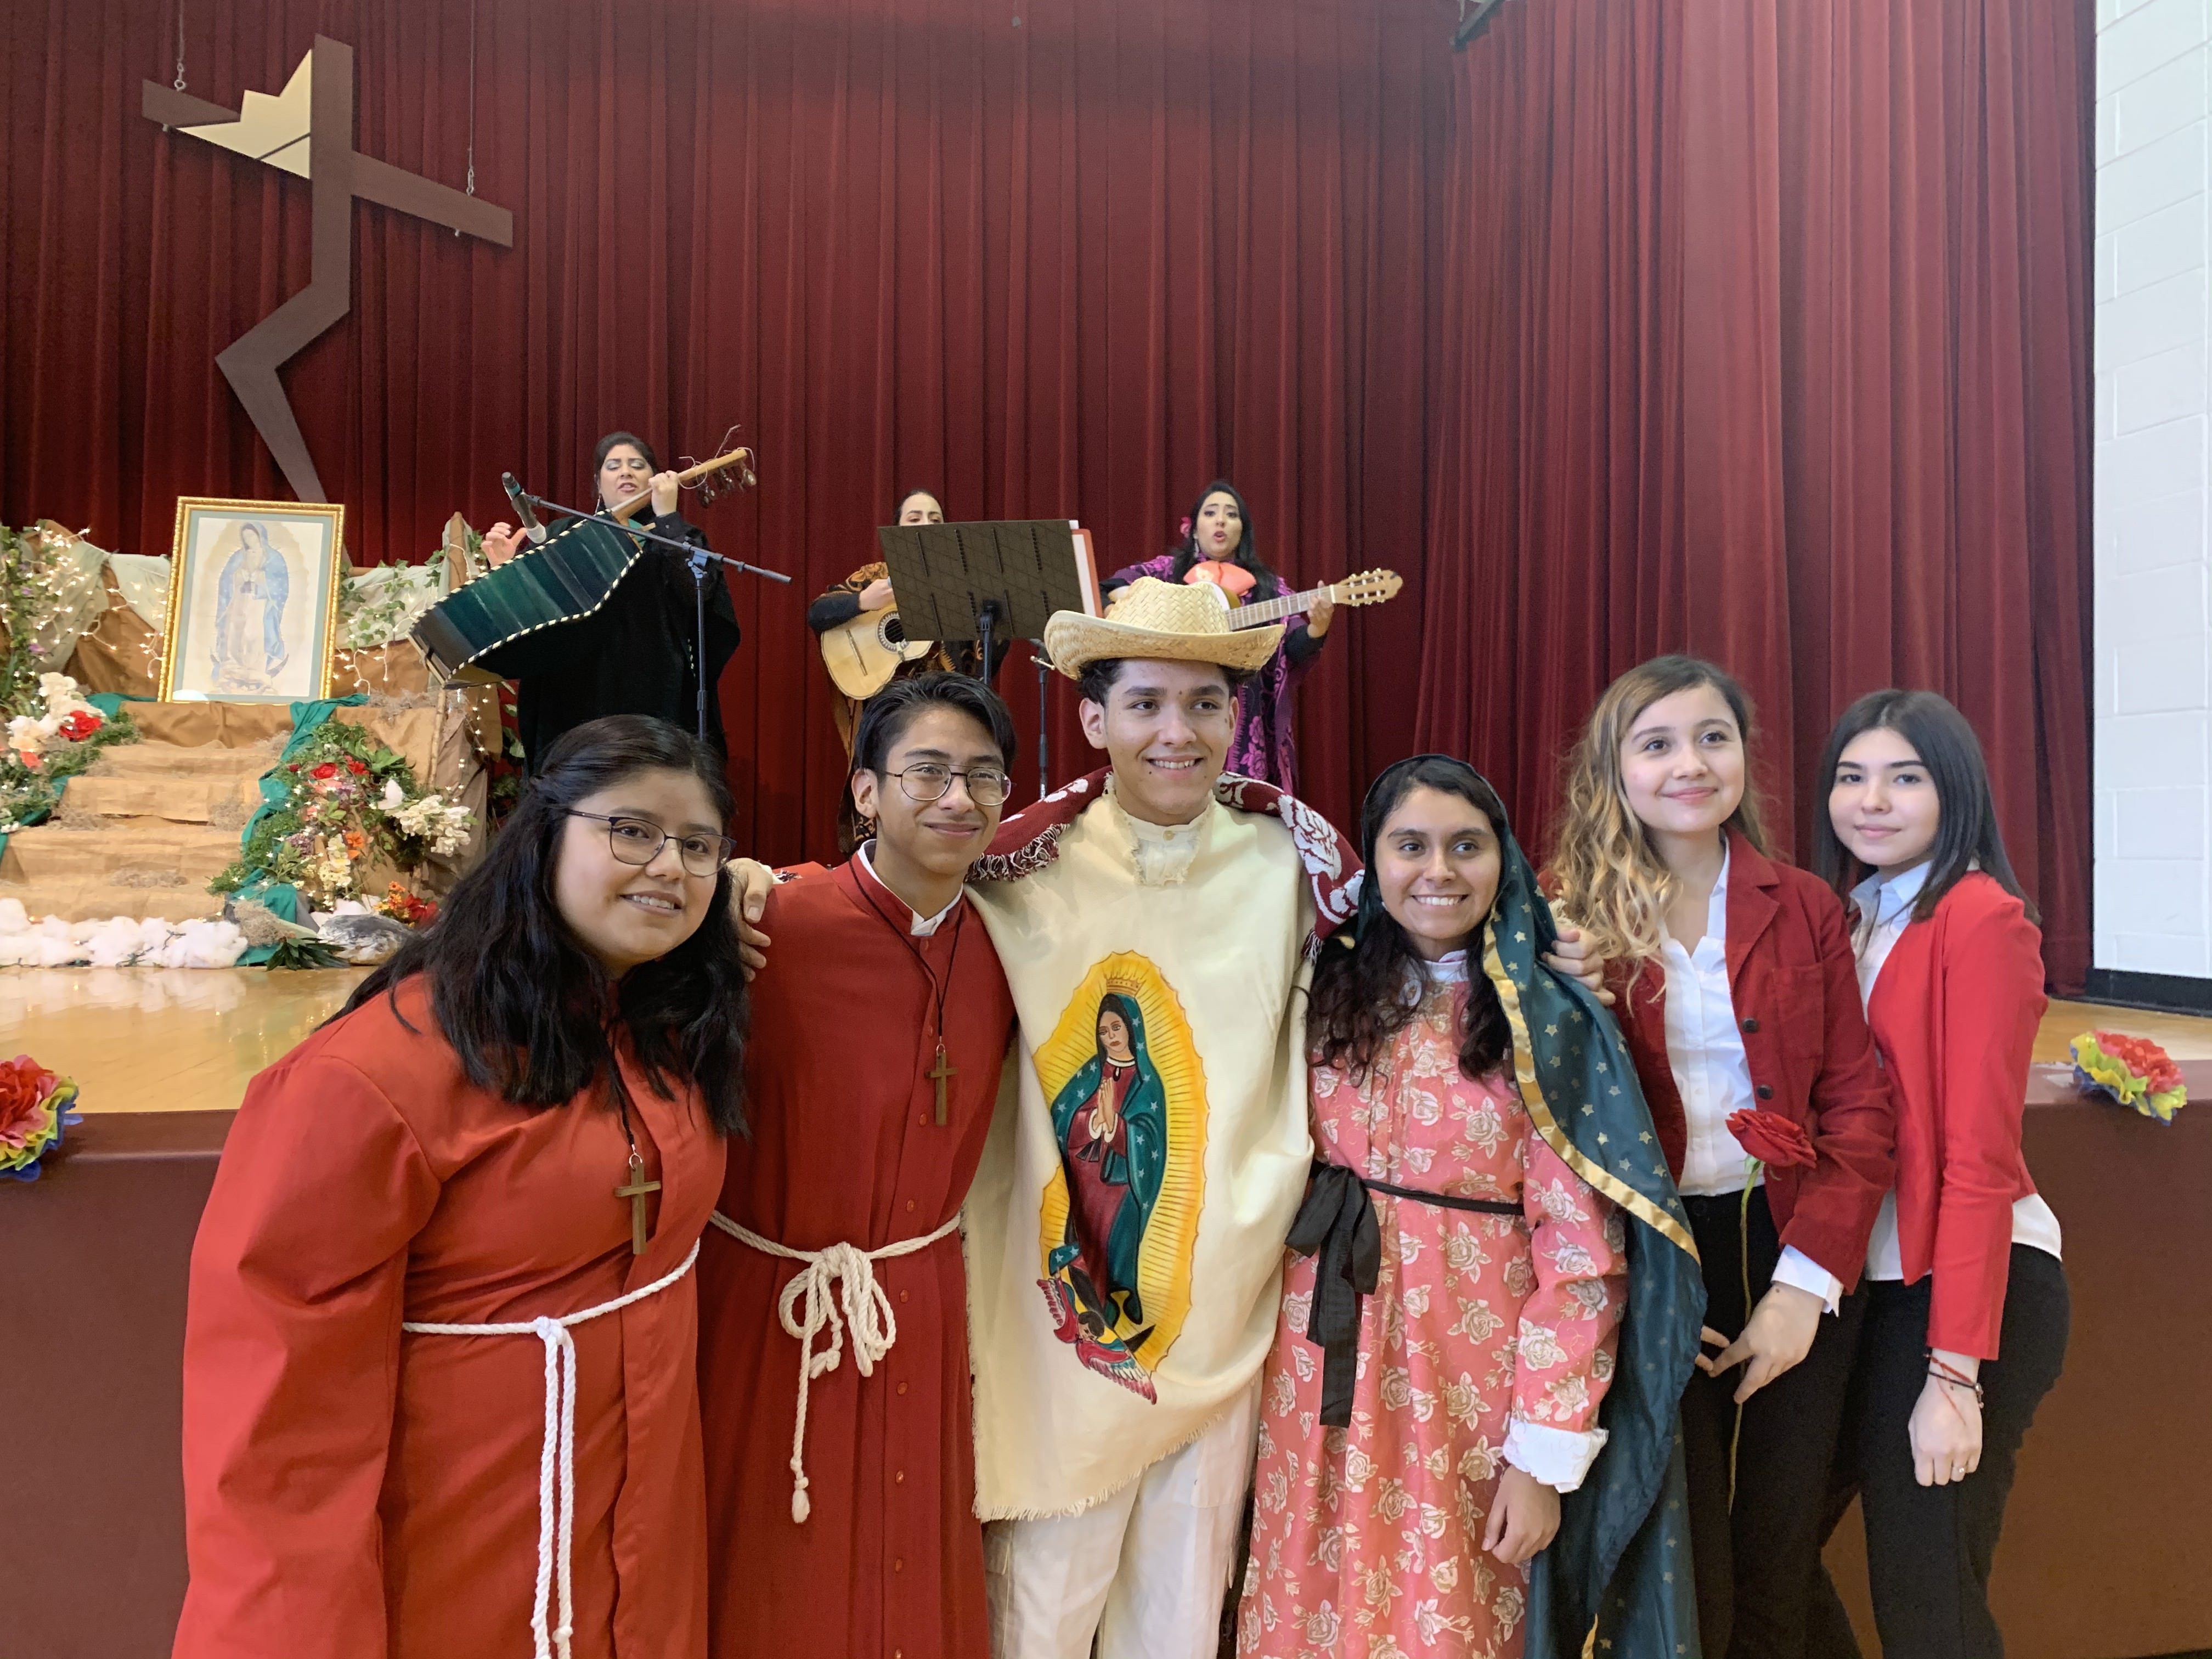 Cristo Rey's 24th Annual Our Lady of Guadalupe Mass and Celebration